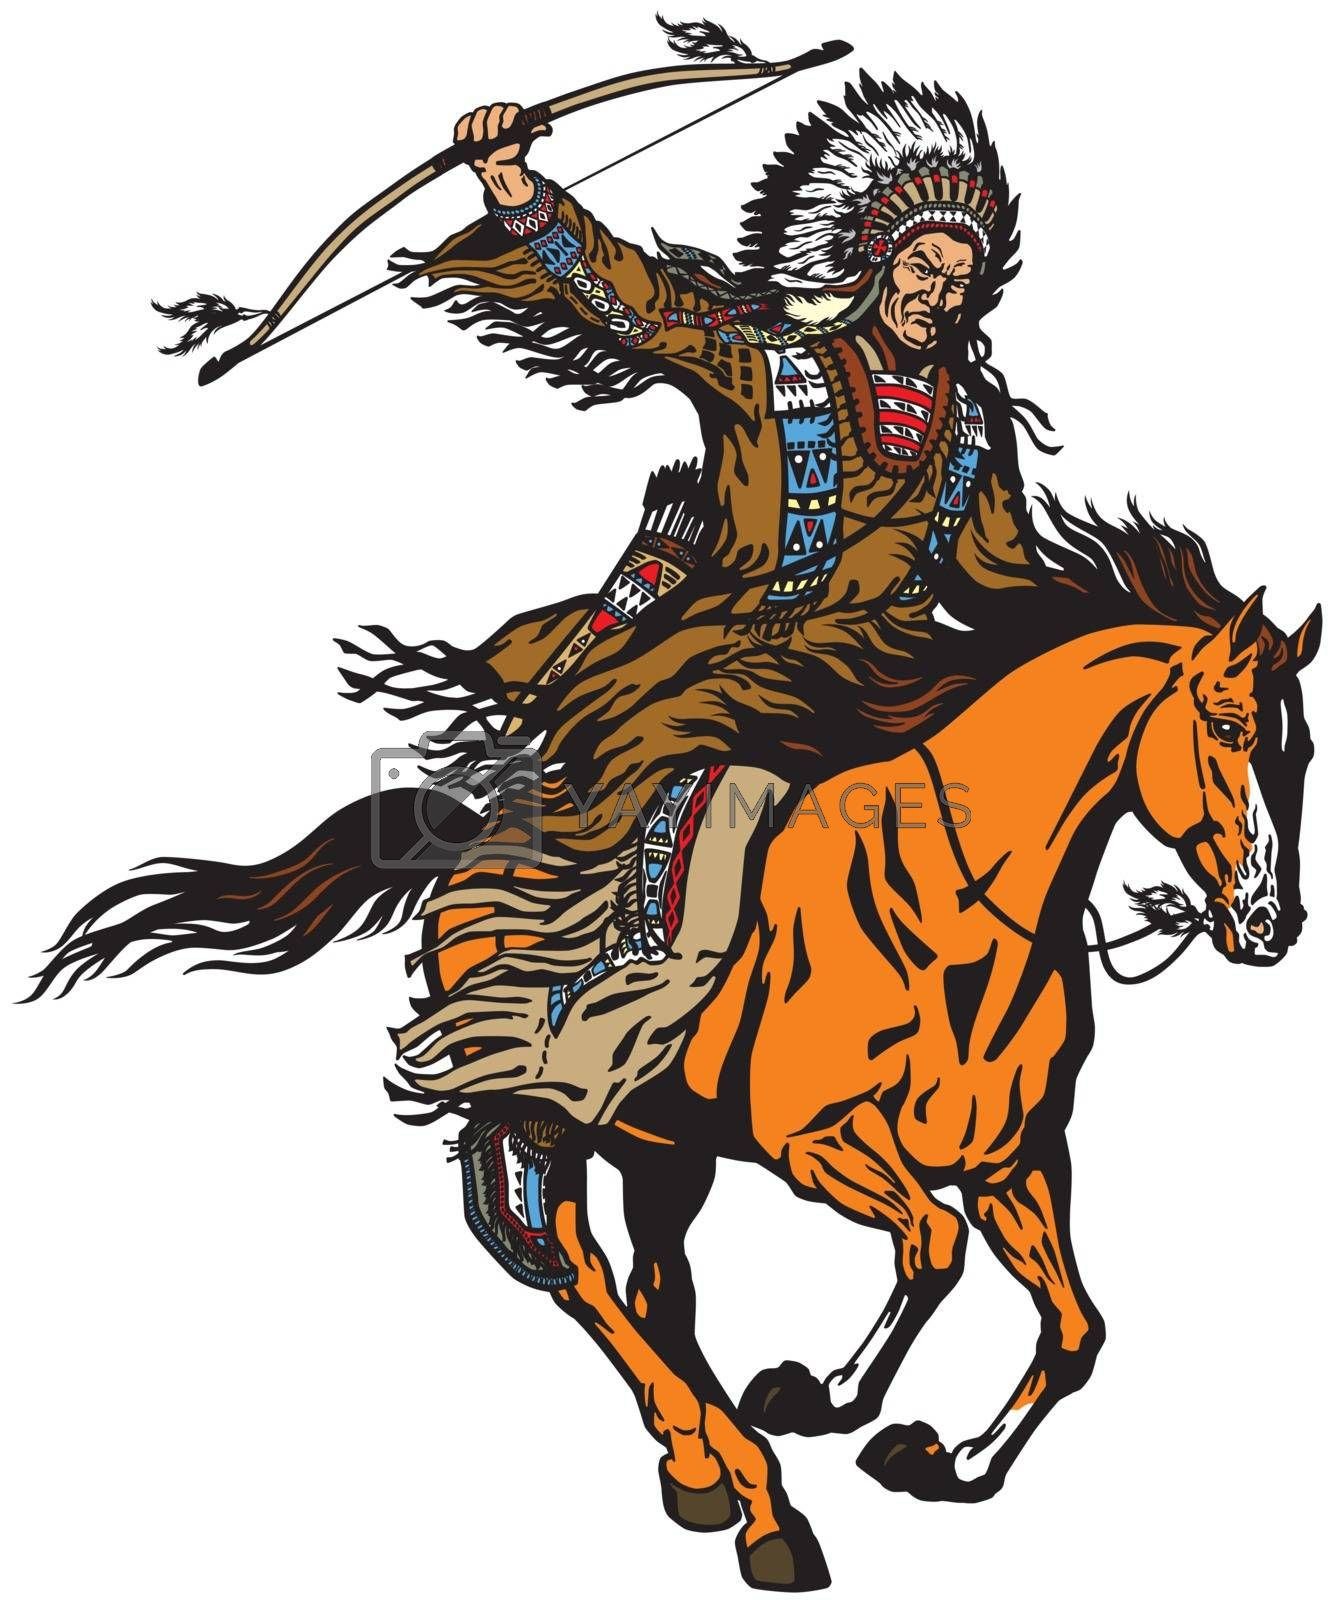 American native Indian chief wearing a feather war bonnet and riding a mustang pony horse in the gallop. Nomadic horseman archer warrior or hunter sitting on a horseback and holding a bow . Isolated vector illustration